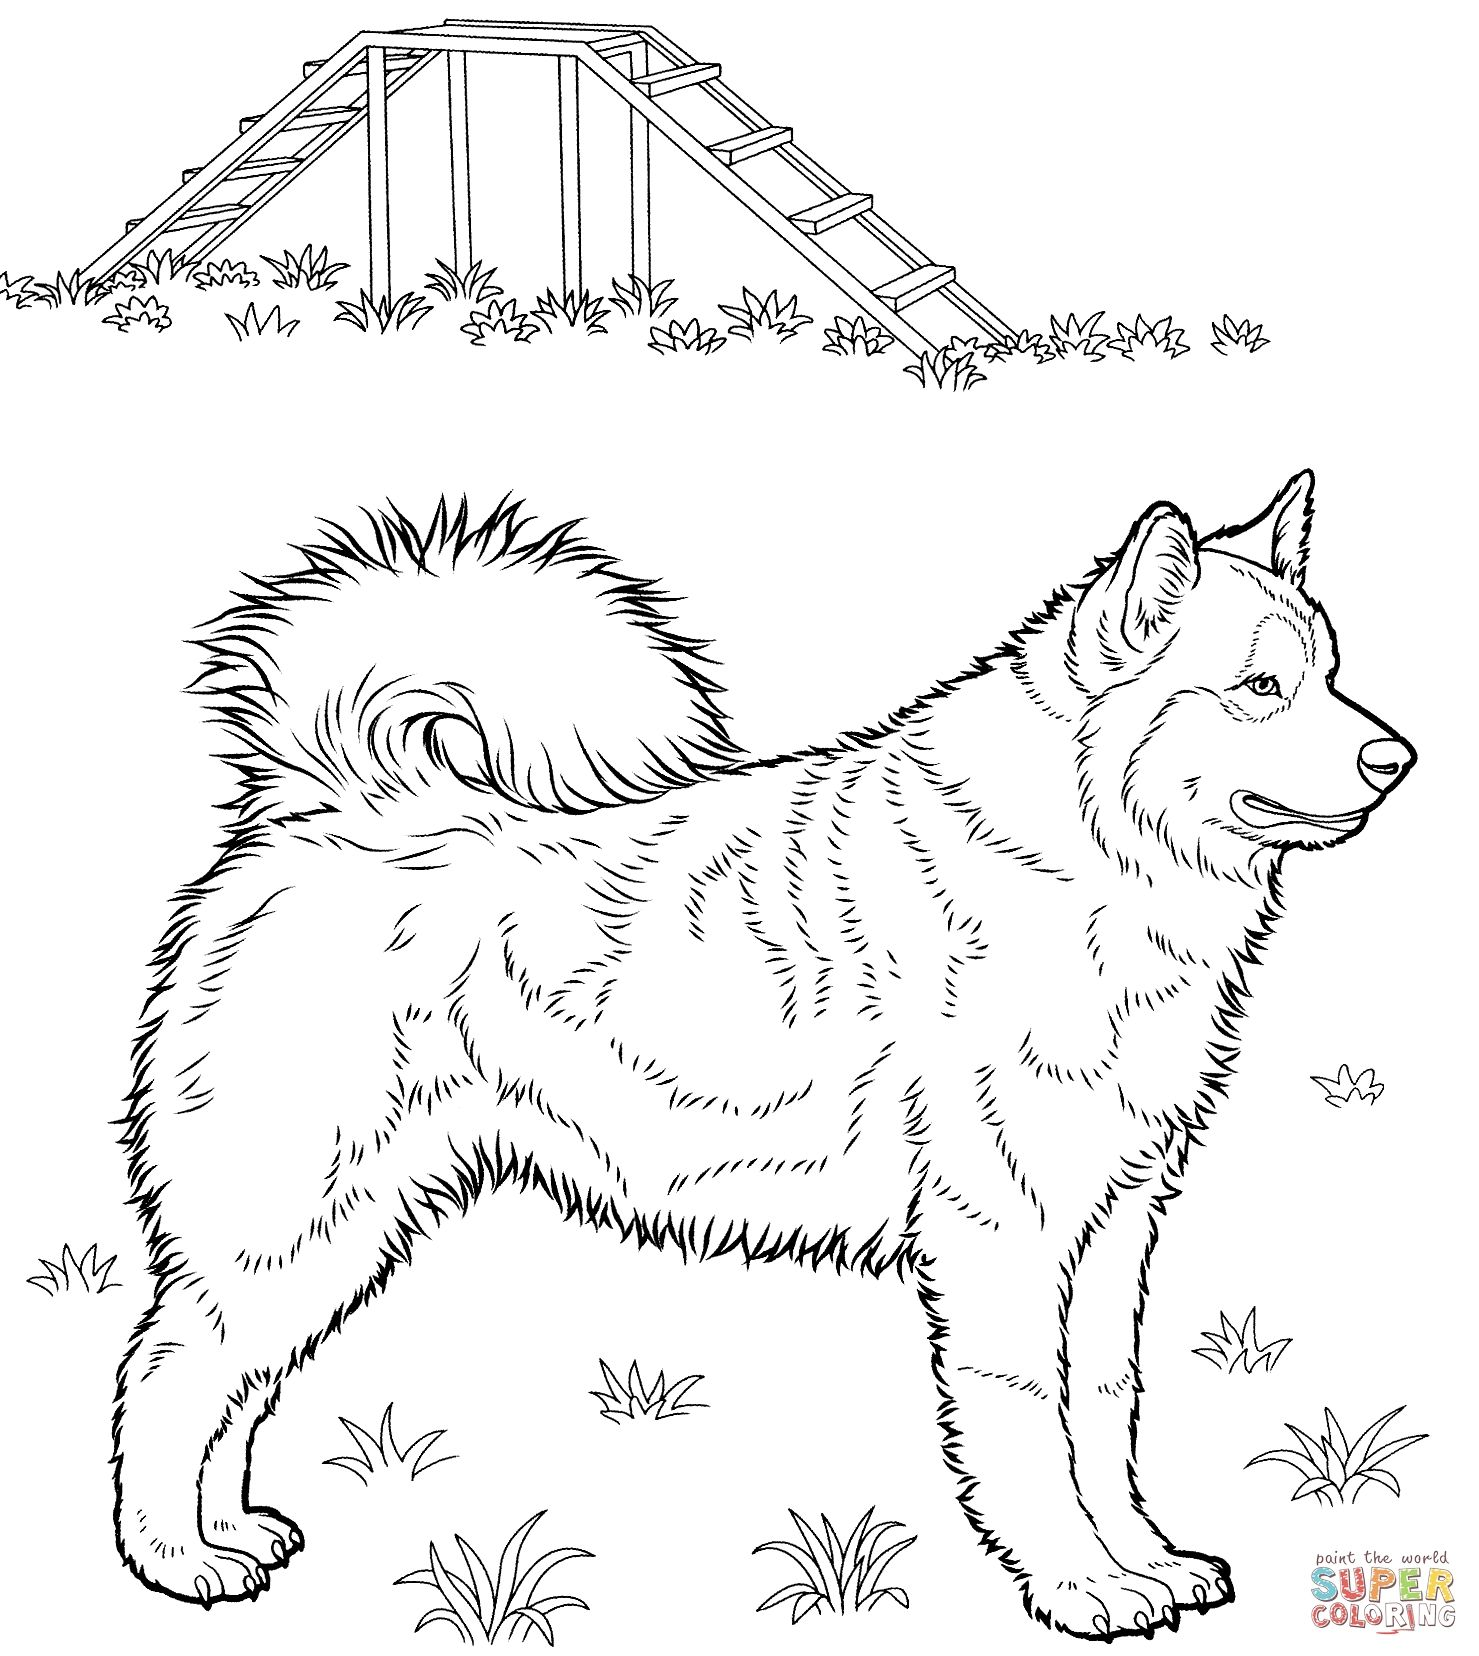 Brilliance Husky Coloring Page Free Printable Coloring